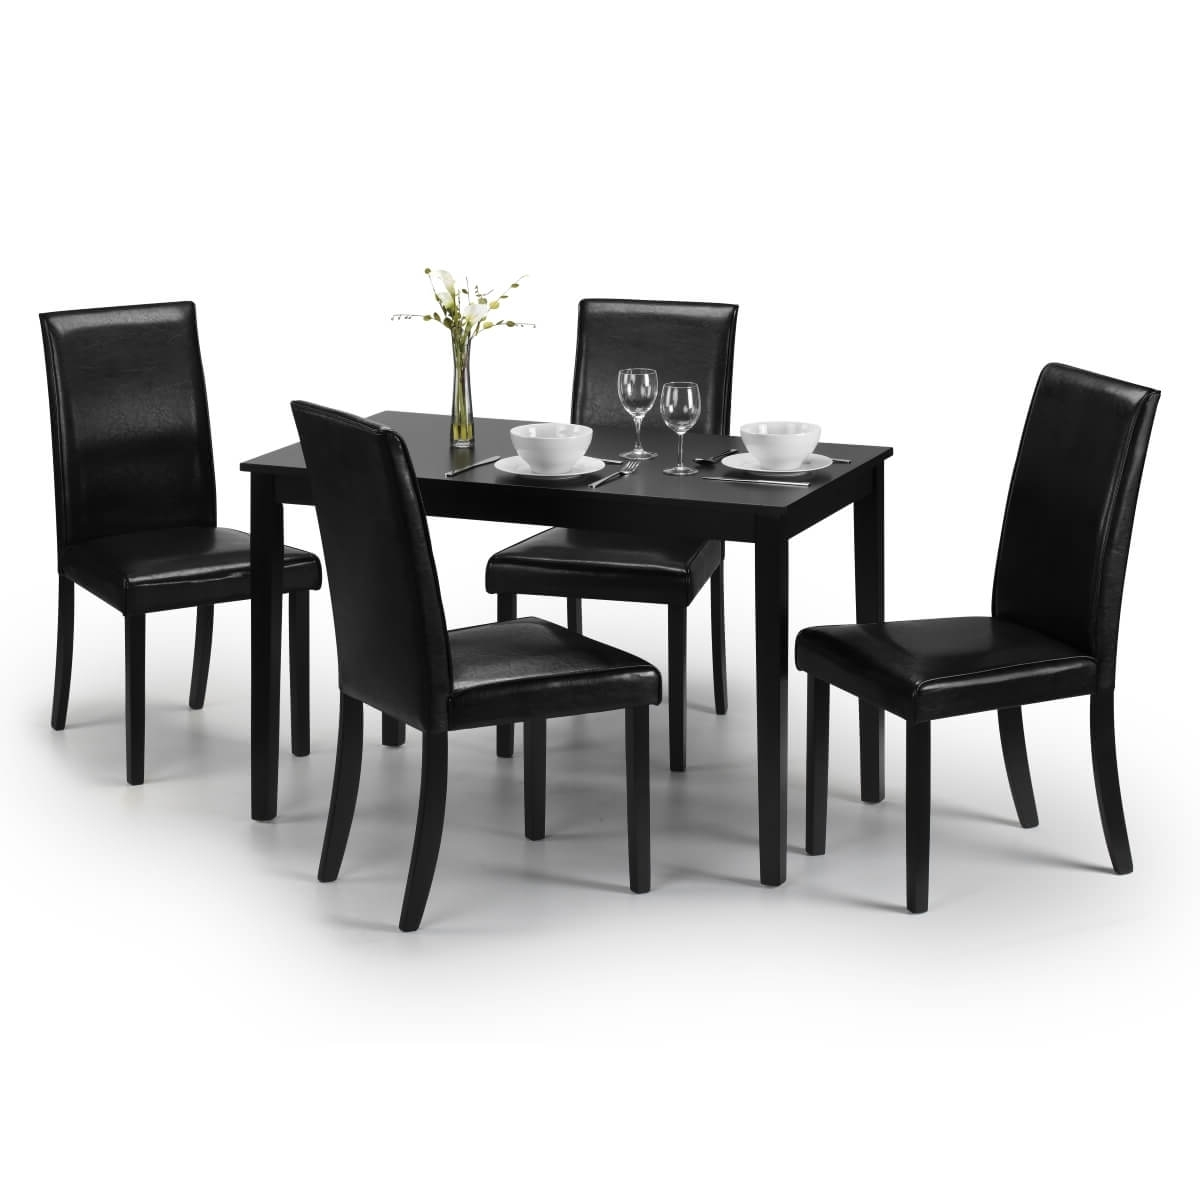 Dining Set – Hudson Dining Table And 4 Chairs In Black Hud006 Throughout 2017 Hudson Dining Tables And Chairs (Gallery 3 of 25)